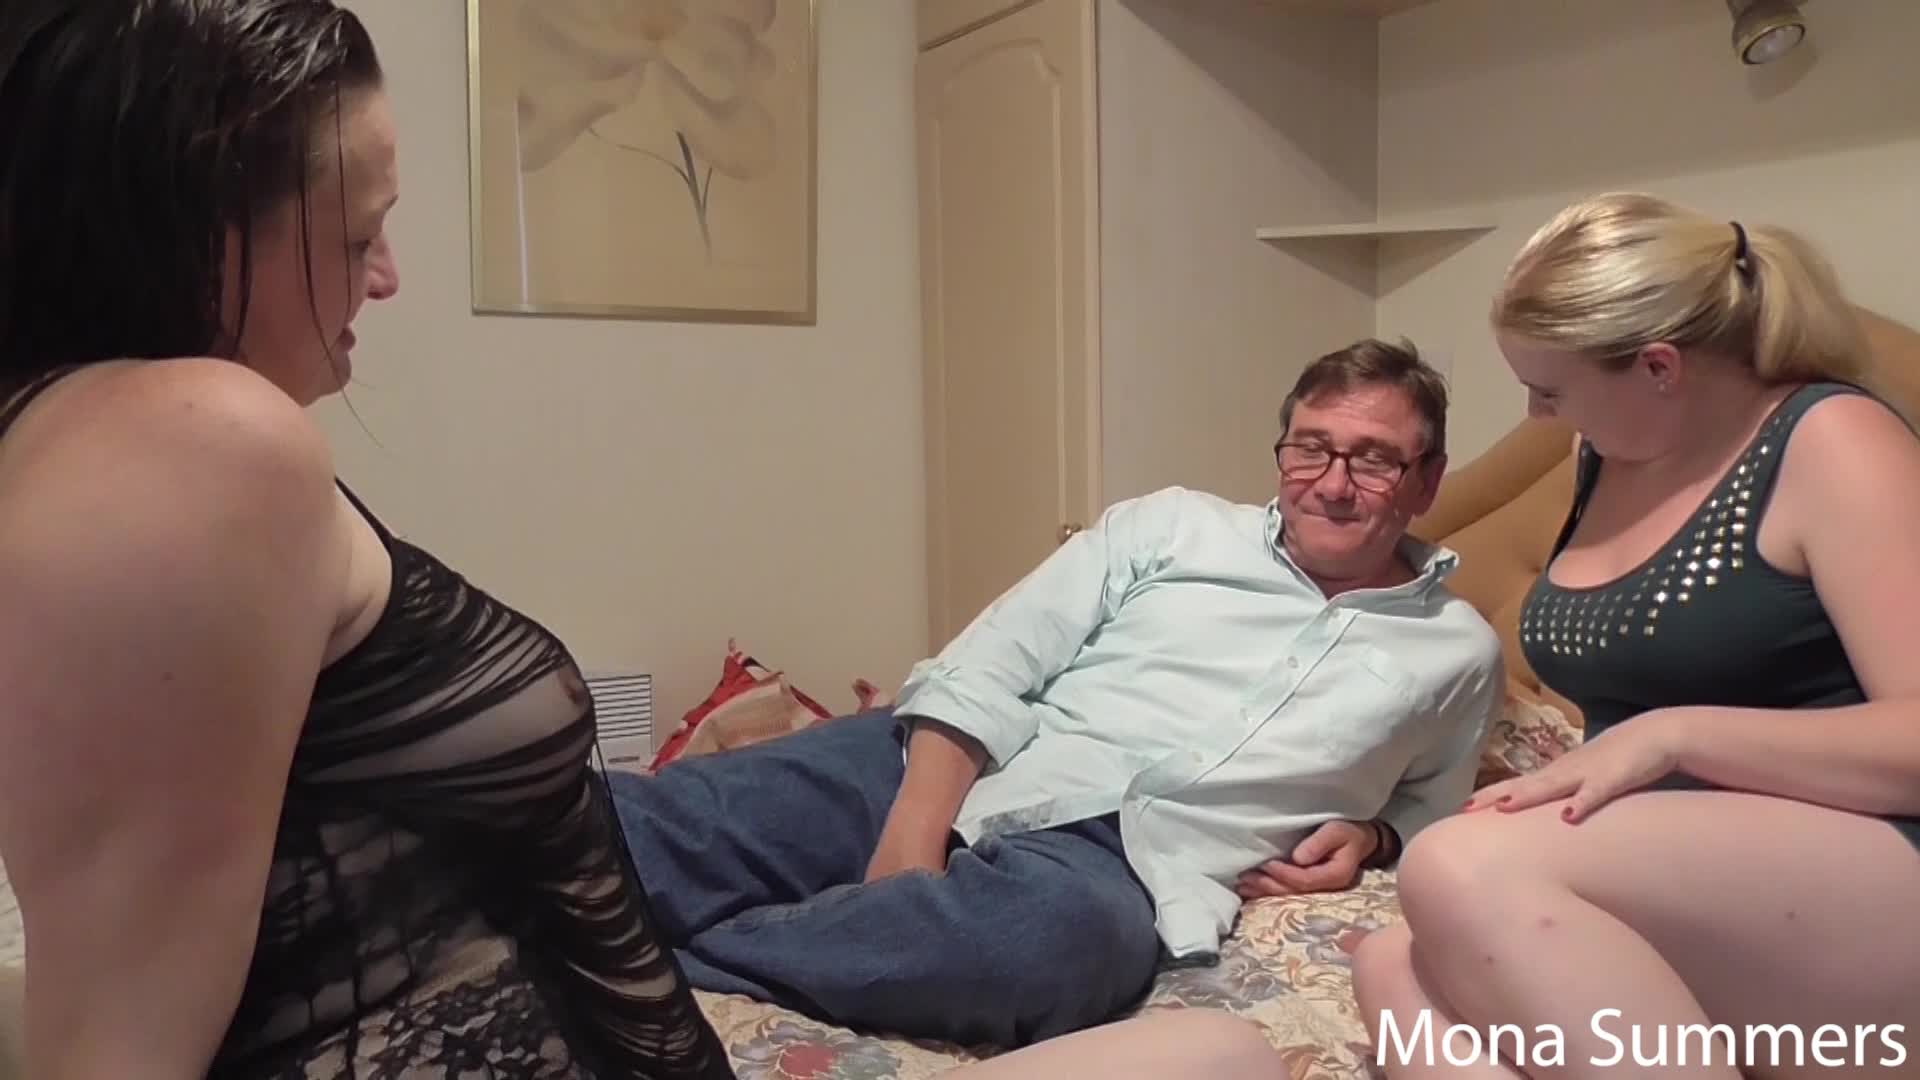 """""""Sexy_Mona91"""" (Threesome, Blonde, Brunette, Older Man / Younger Women, European) Swingers date - ManyVids Production"""